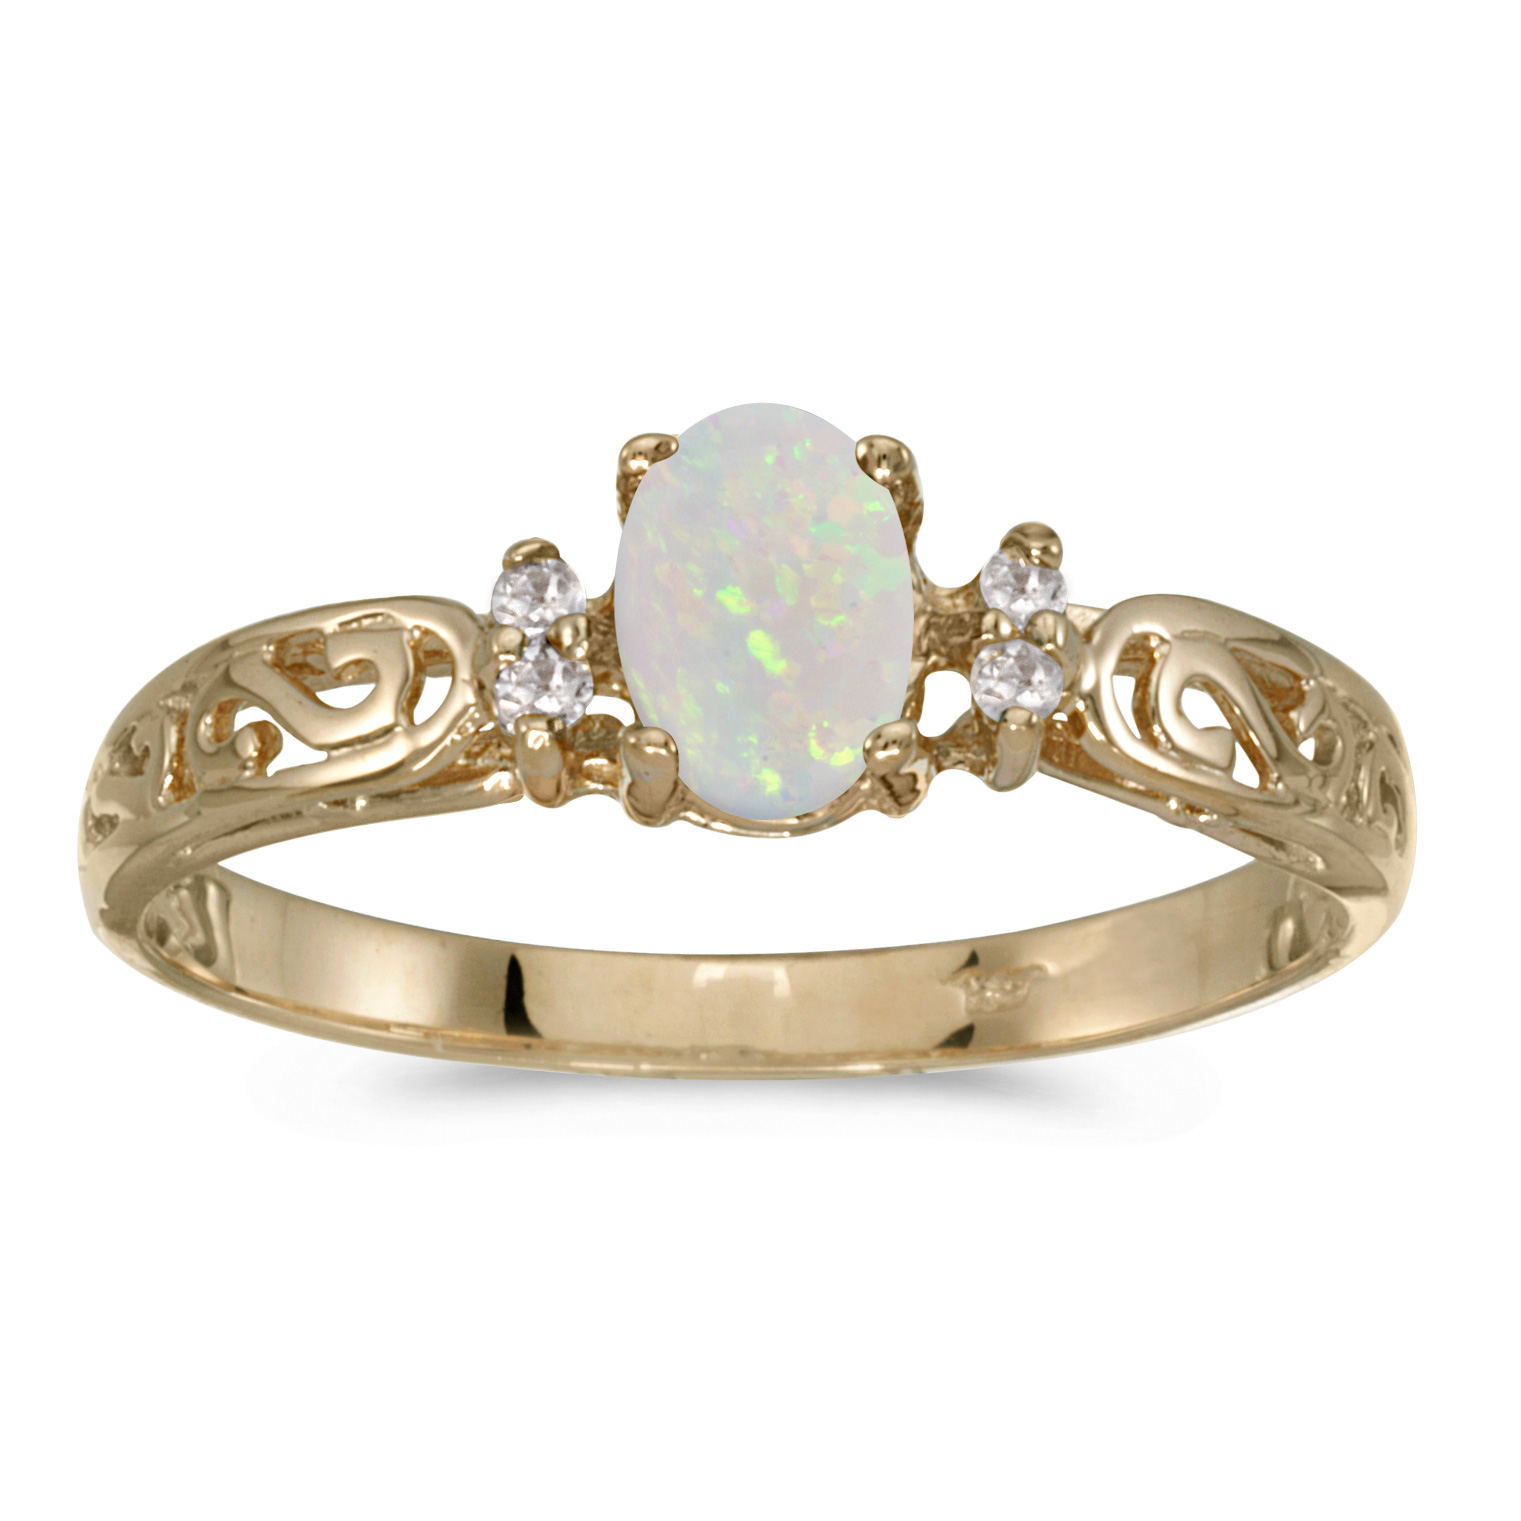 14k Yellow Gold Oval Opal And Diamond Filagree Ring by